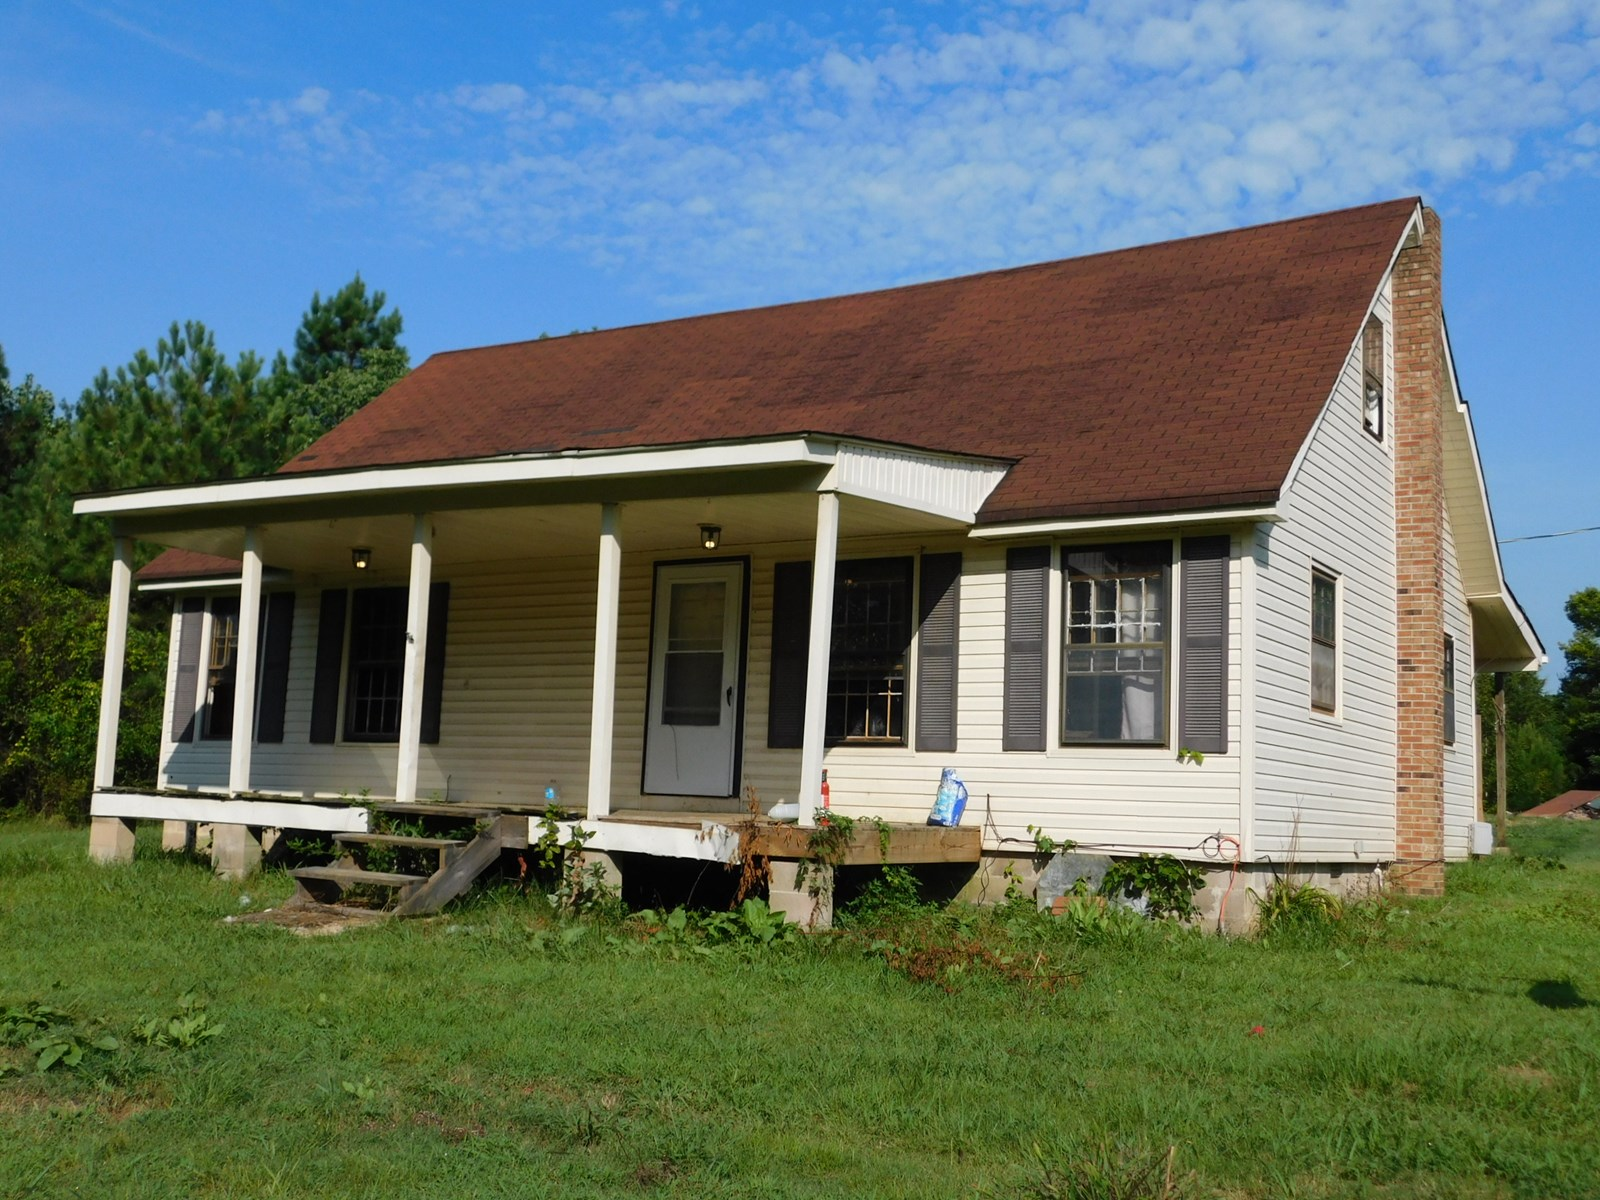 Country Home for sale in TN. Minutes to TN River. Pond. Barn